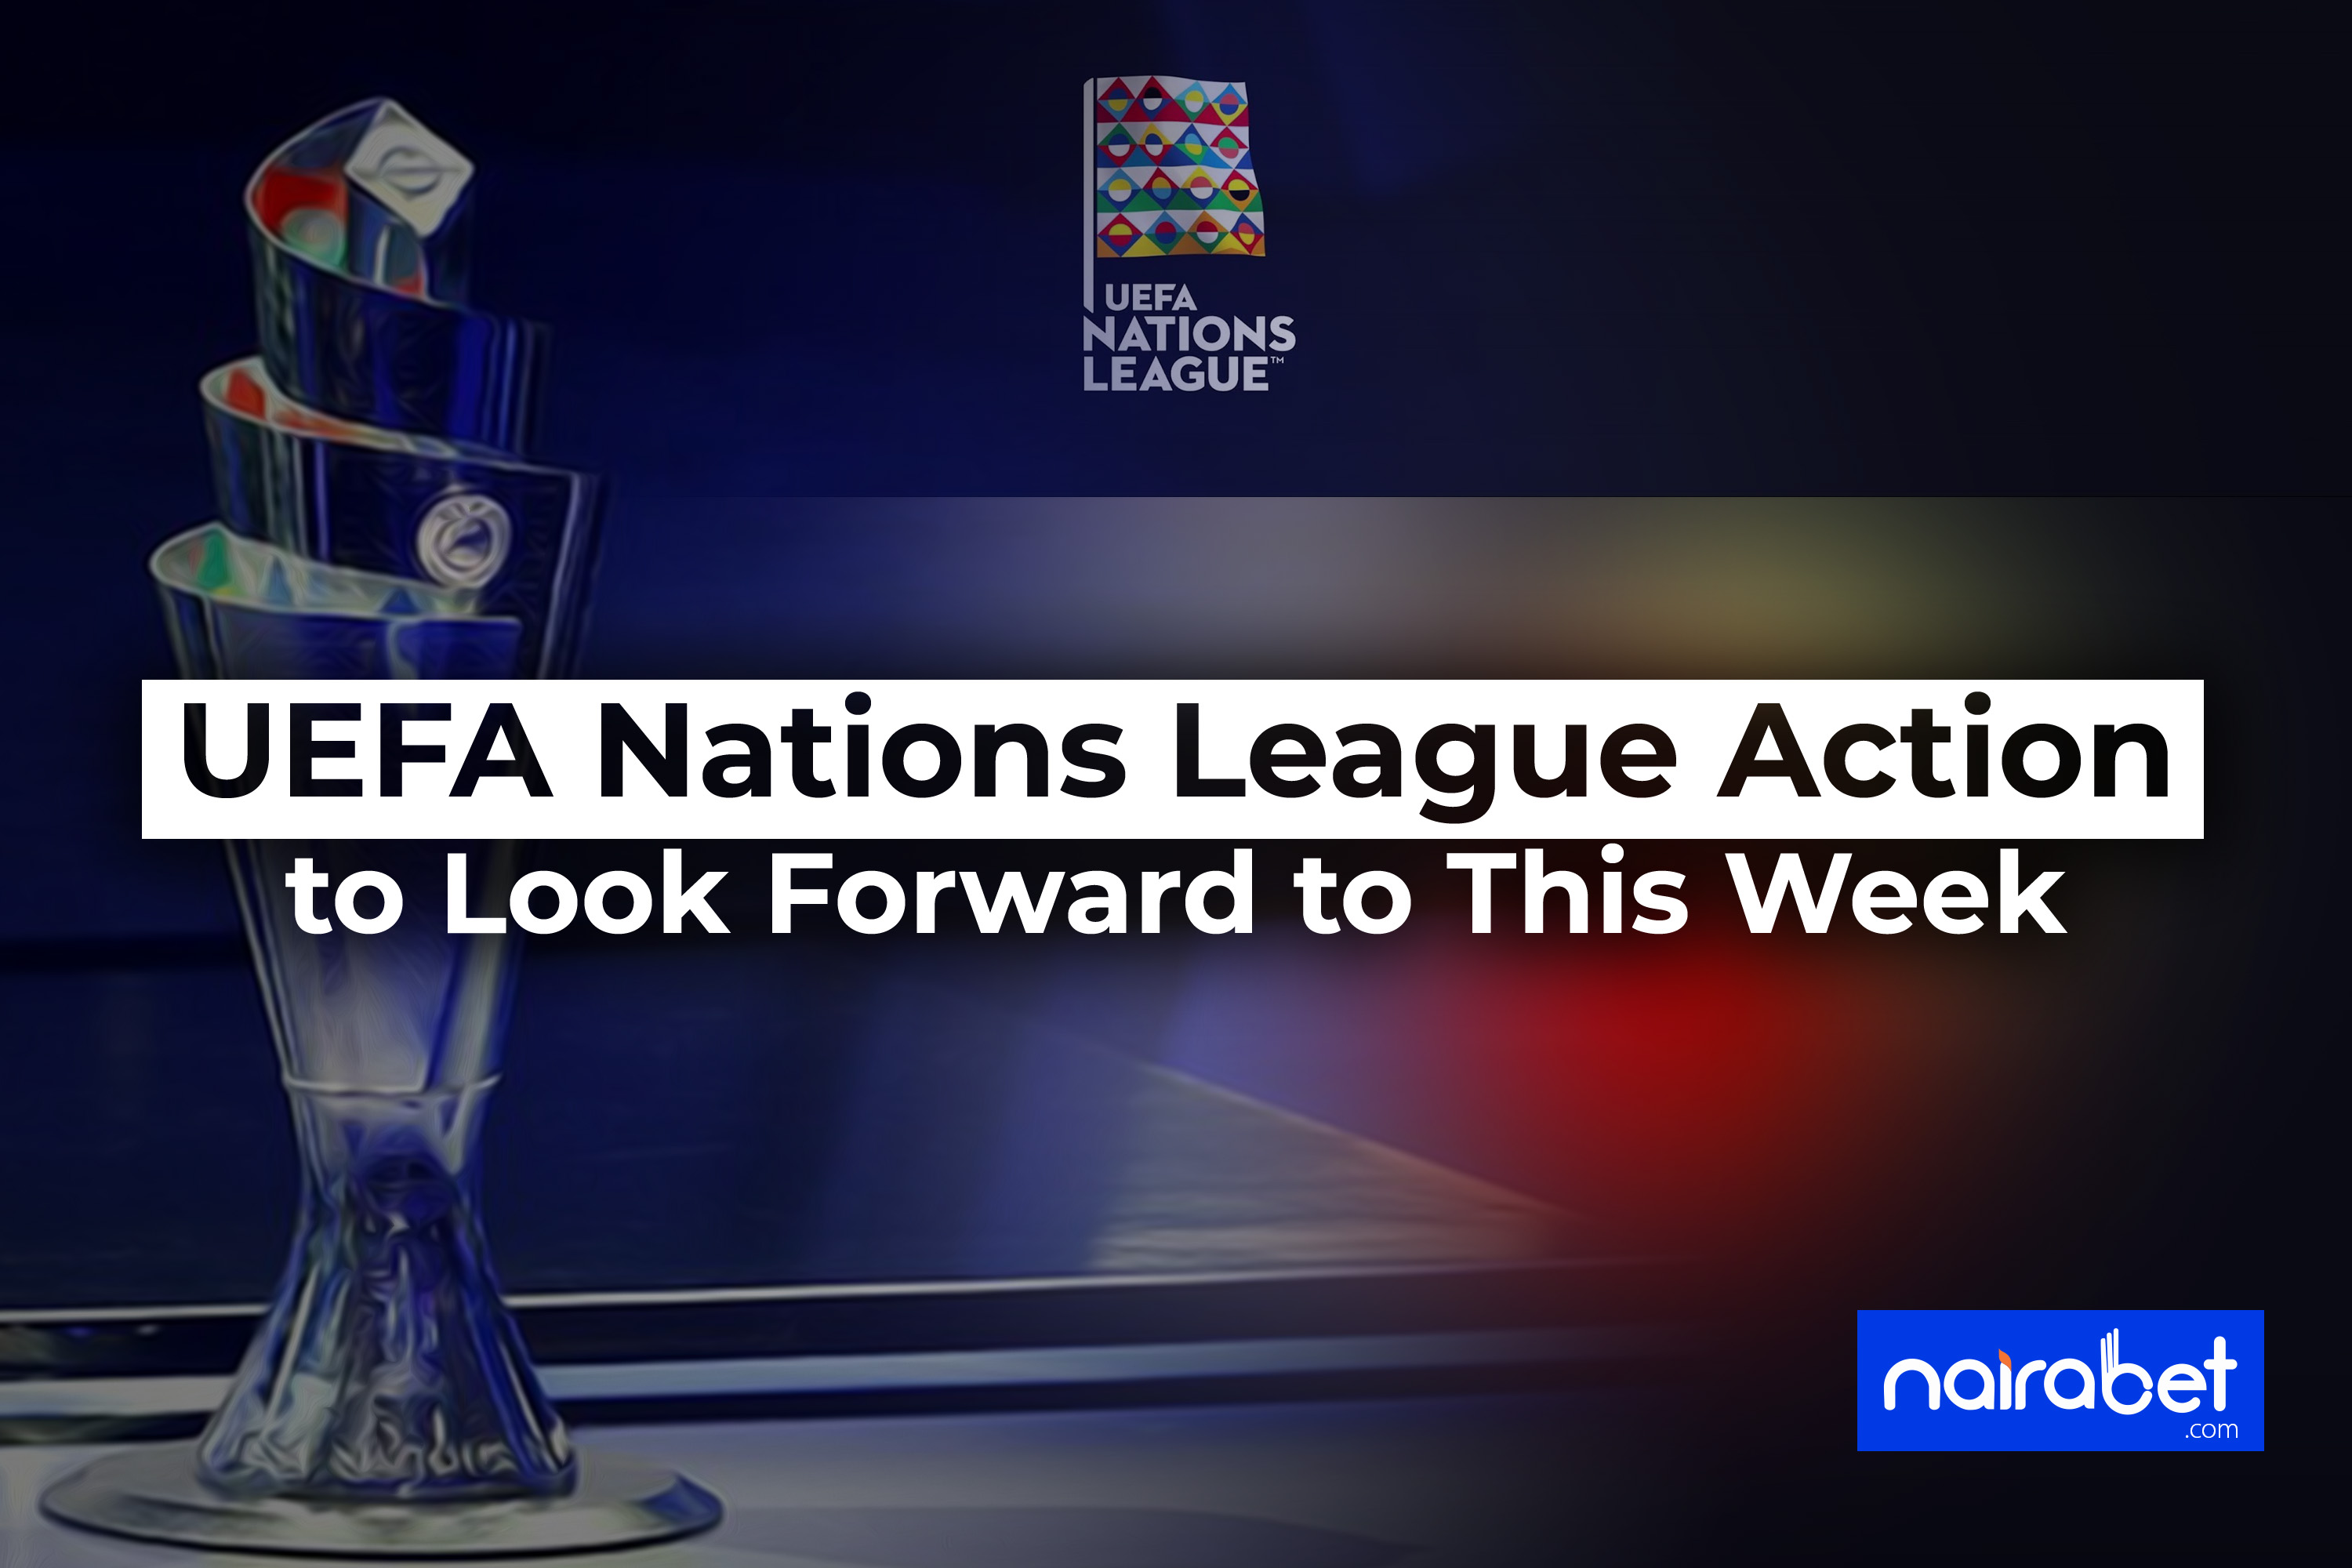 uefa nations league action